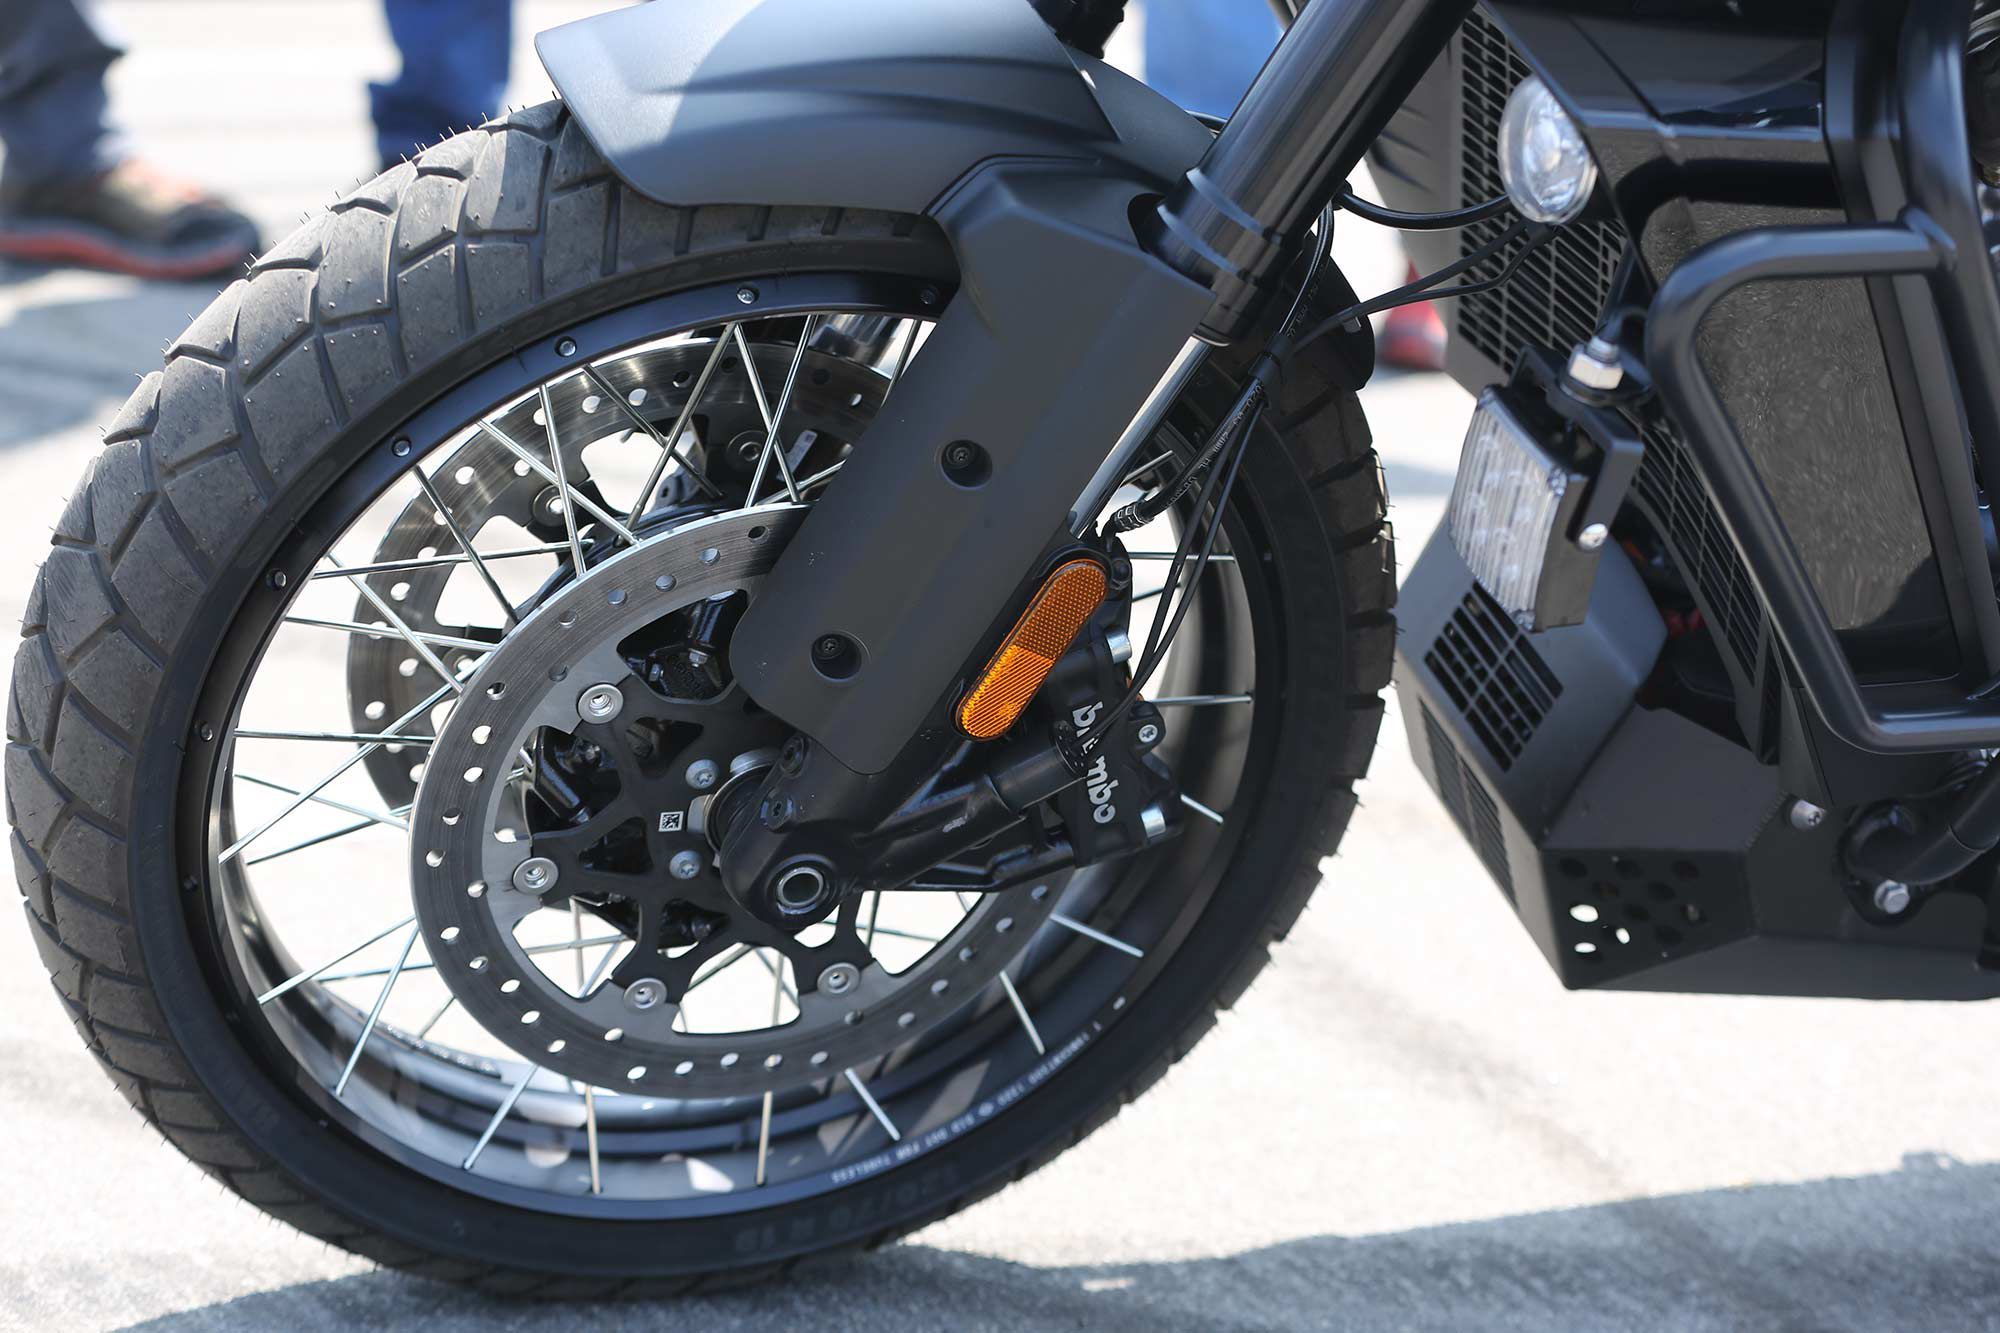 Harley-Davidson's aftermarket spoked wheels were installed on the police concept.